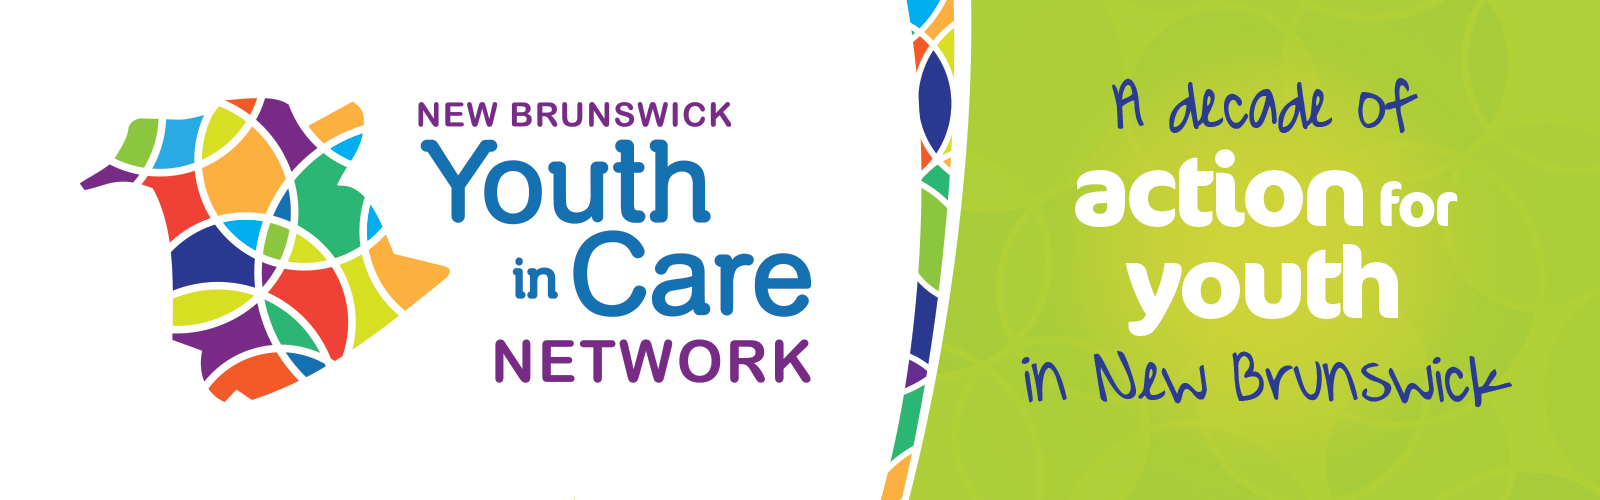 New Brunswick Youth in Care Network